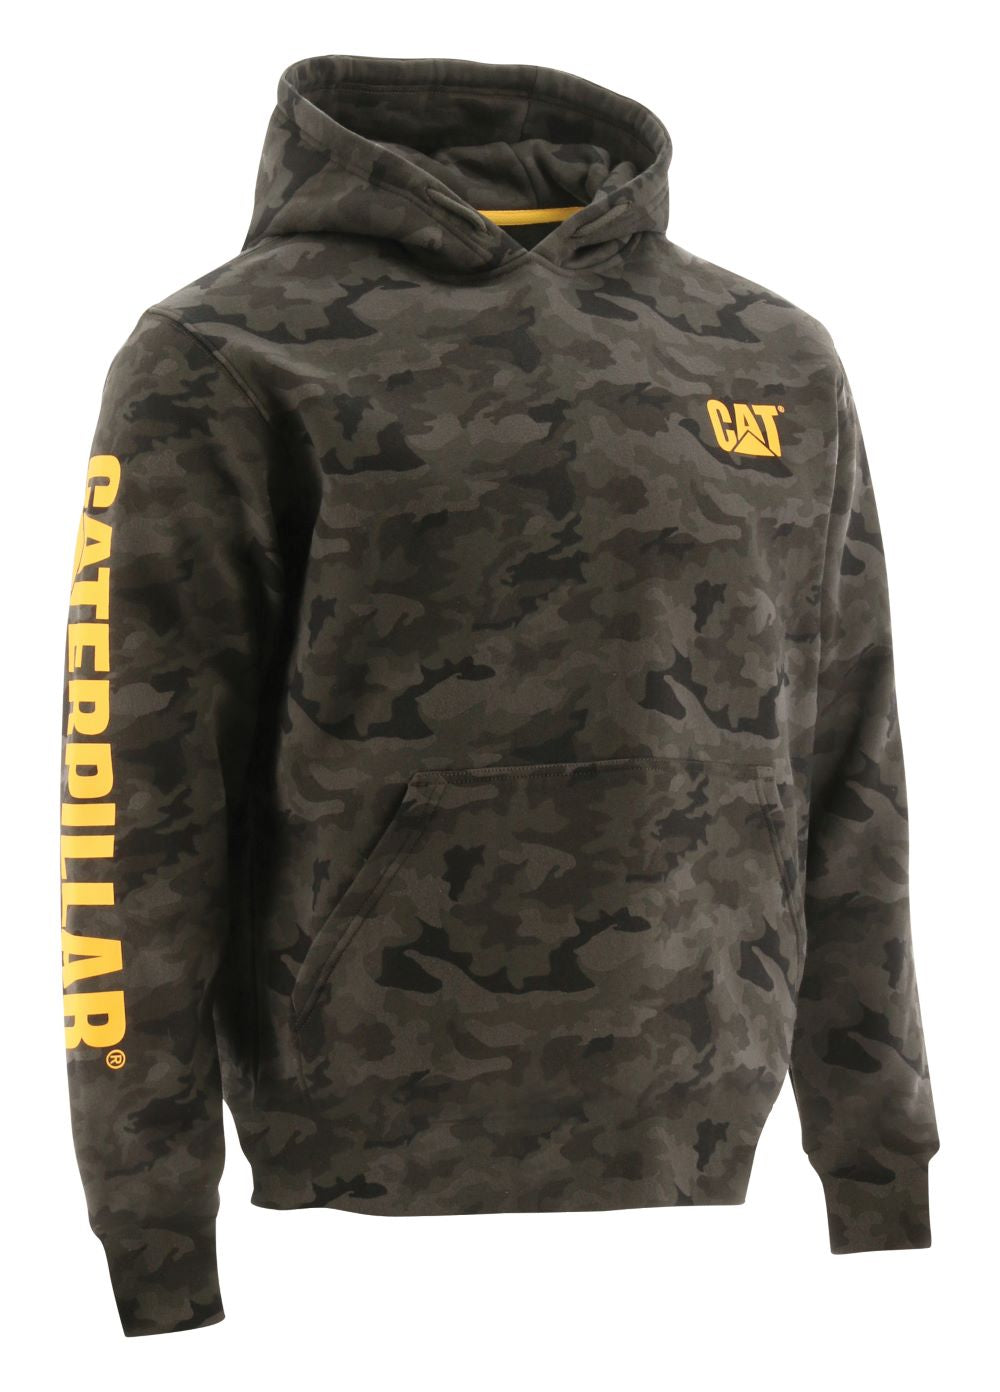 'Caterpillar' Men's Trademark Banner Hooded Sweatshirt - Night Camo